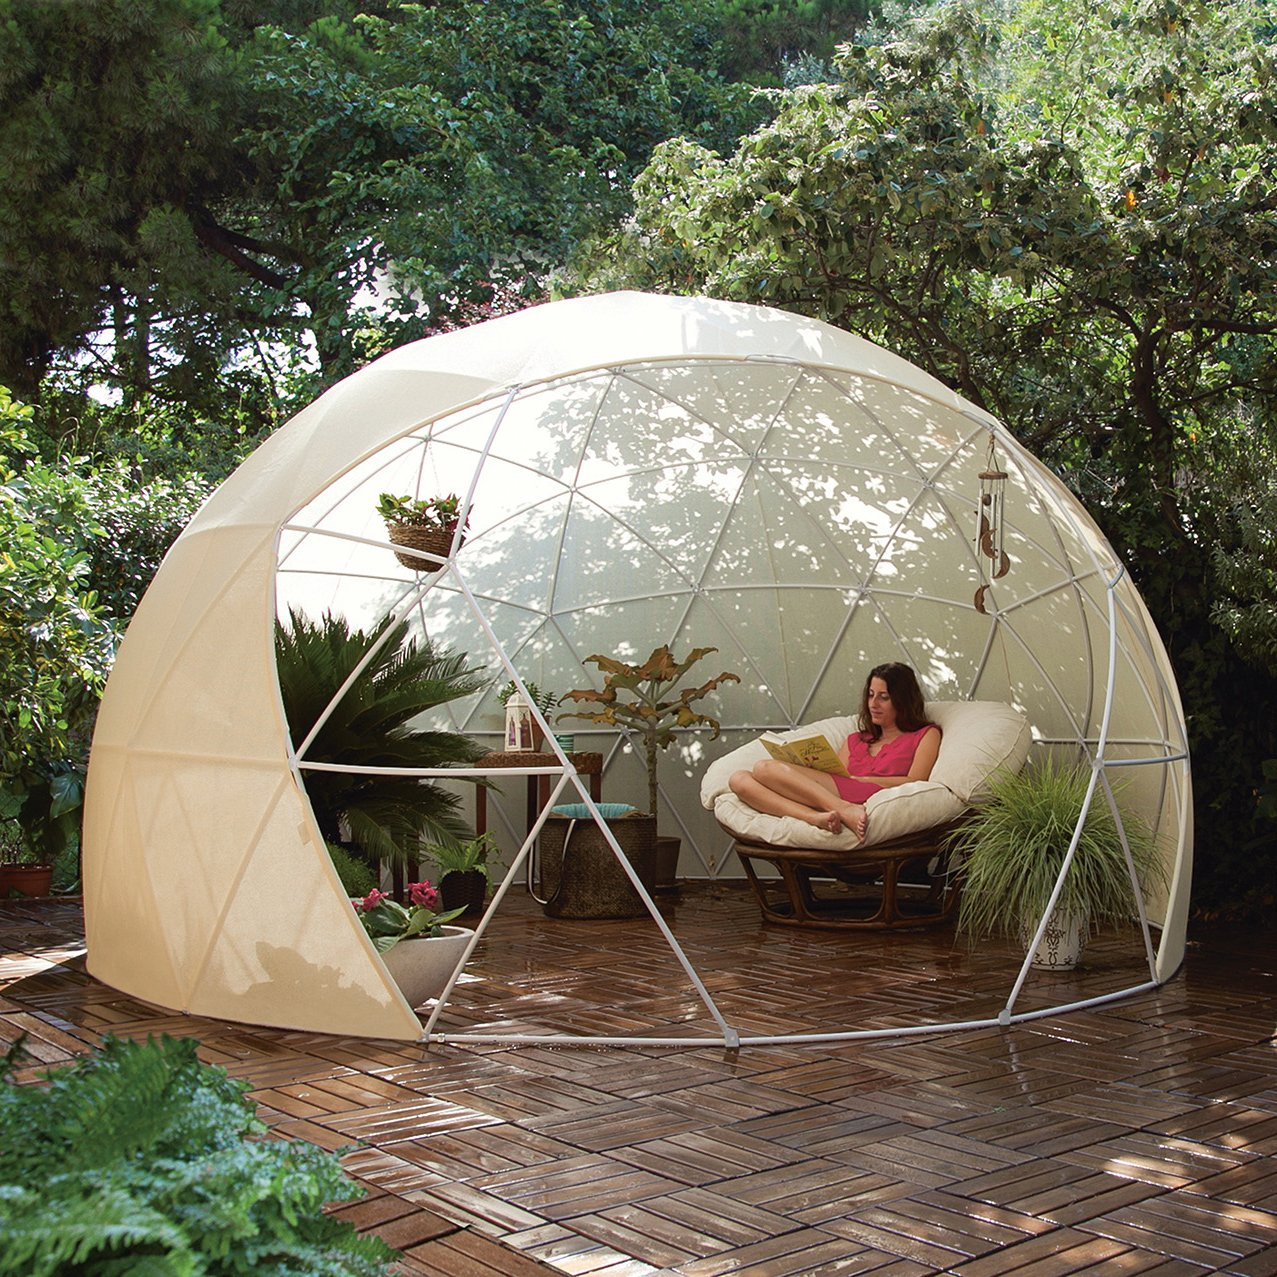 The unique Garden Igloo is a multi-purpose portable dome shaped structure that can transform your outside area and can be used as a stylish conservatory ... & Garden Igloo Dome u0026 Canopy Cover - FanShoppingTherapy